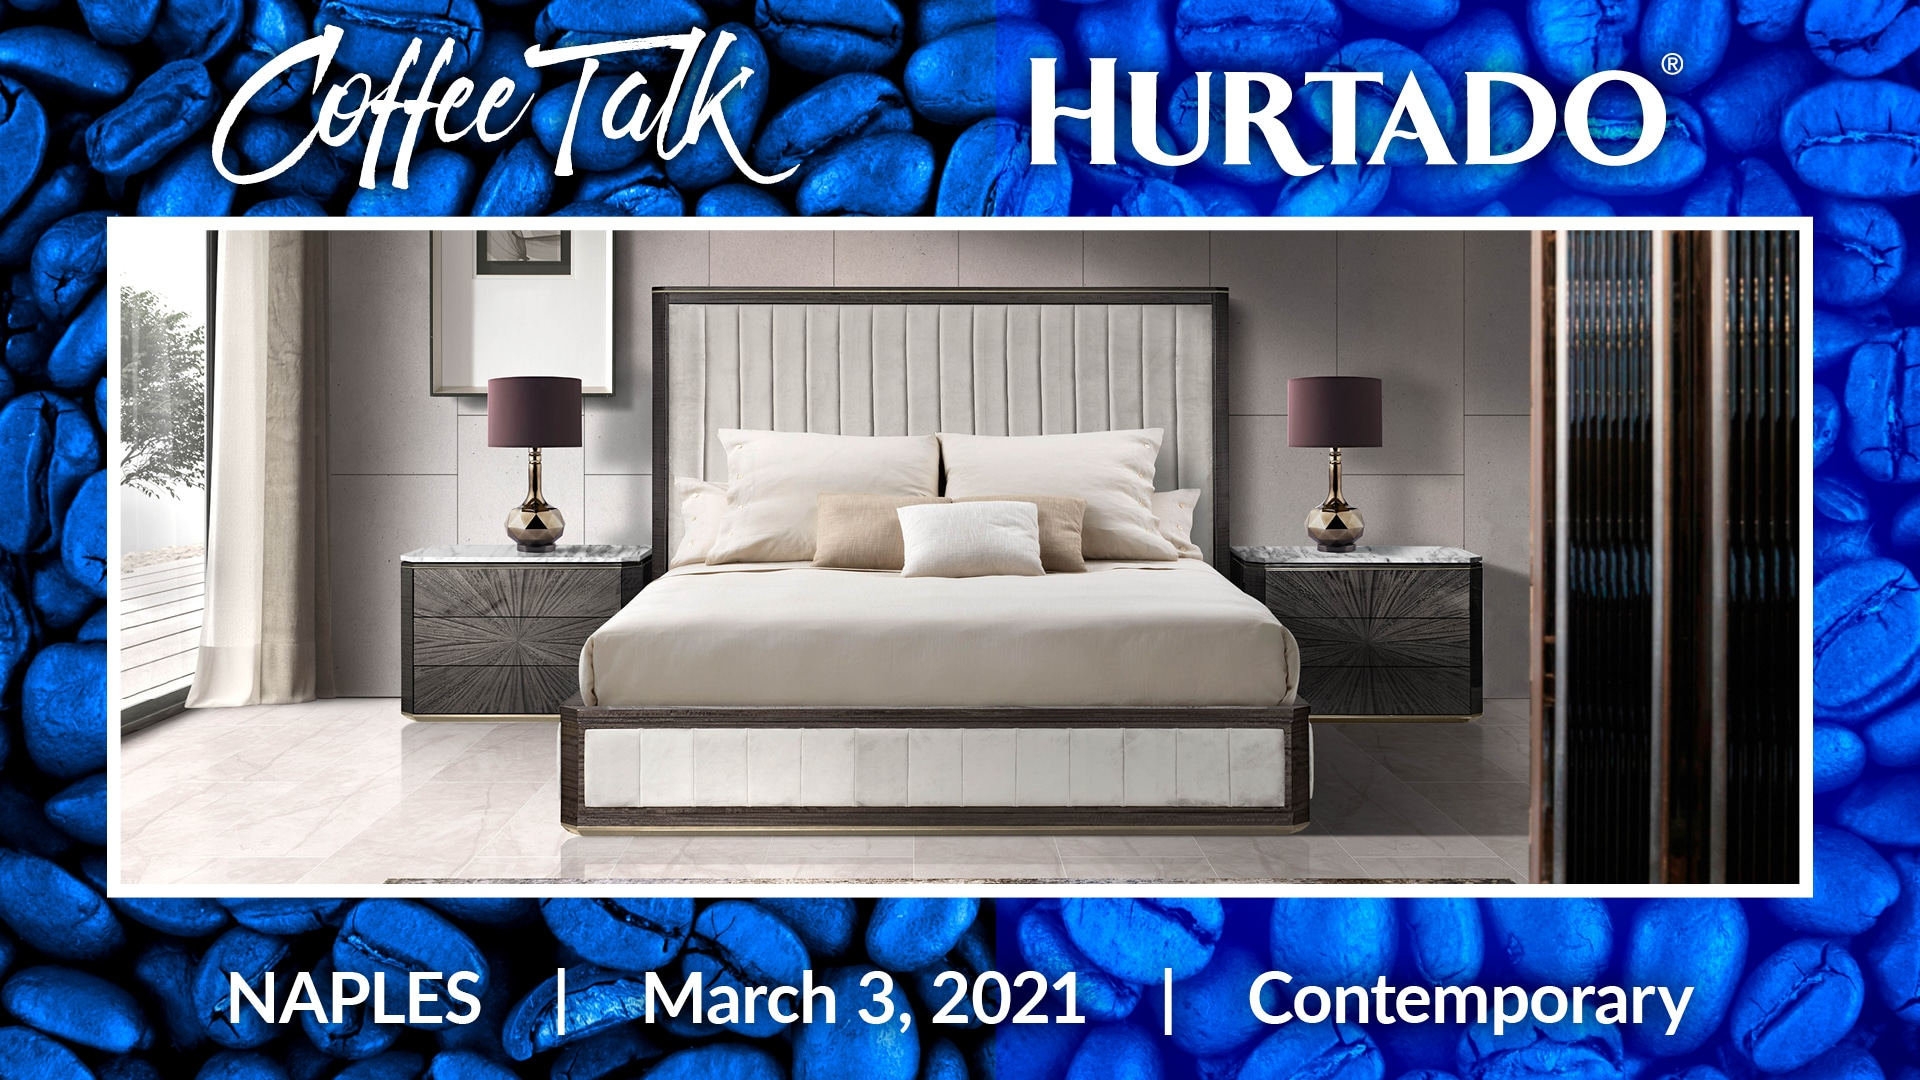 Coffee Talk with Hurtado at Contemporary Furniture Naples, March 3, 2021